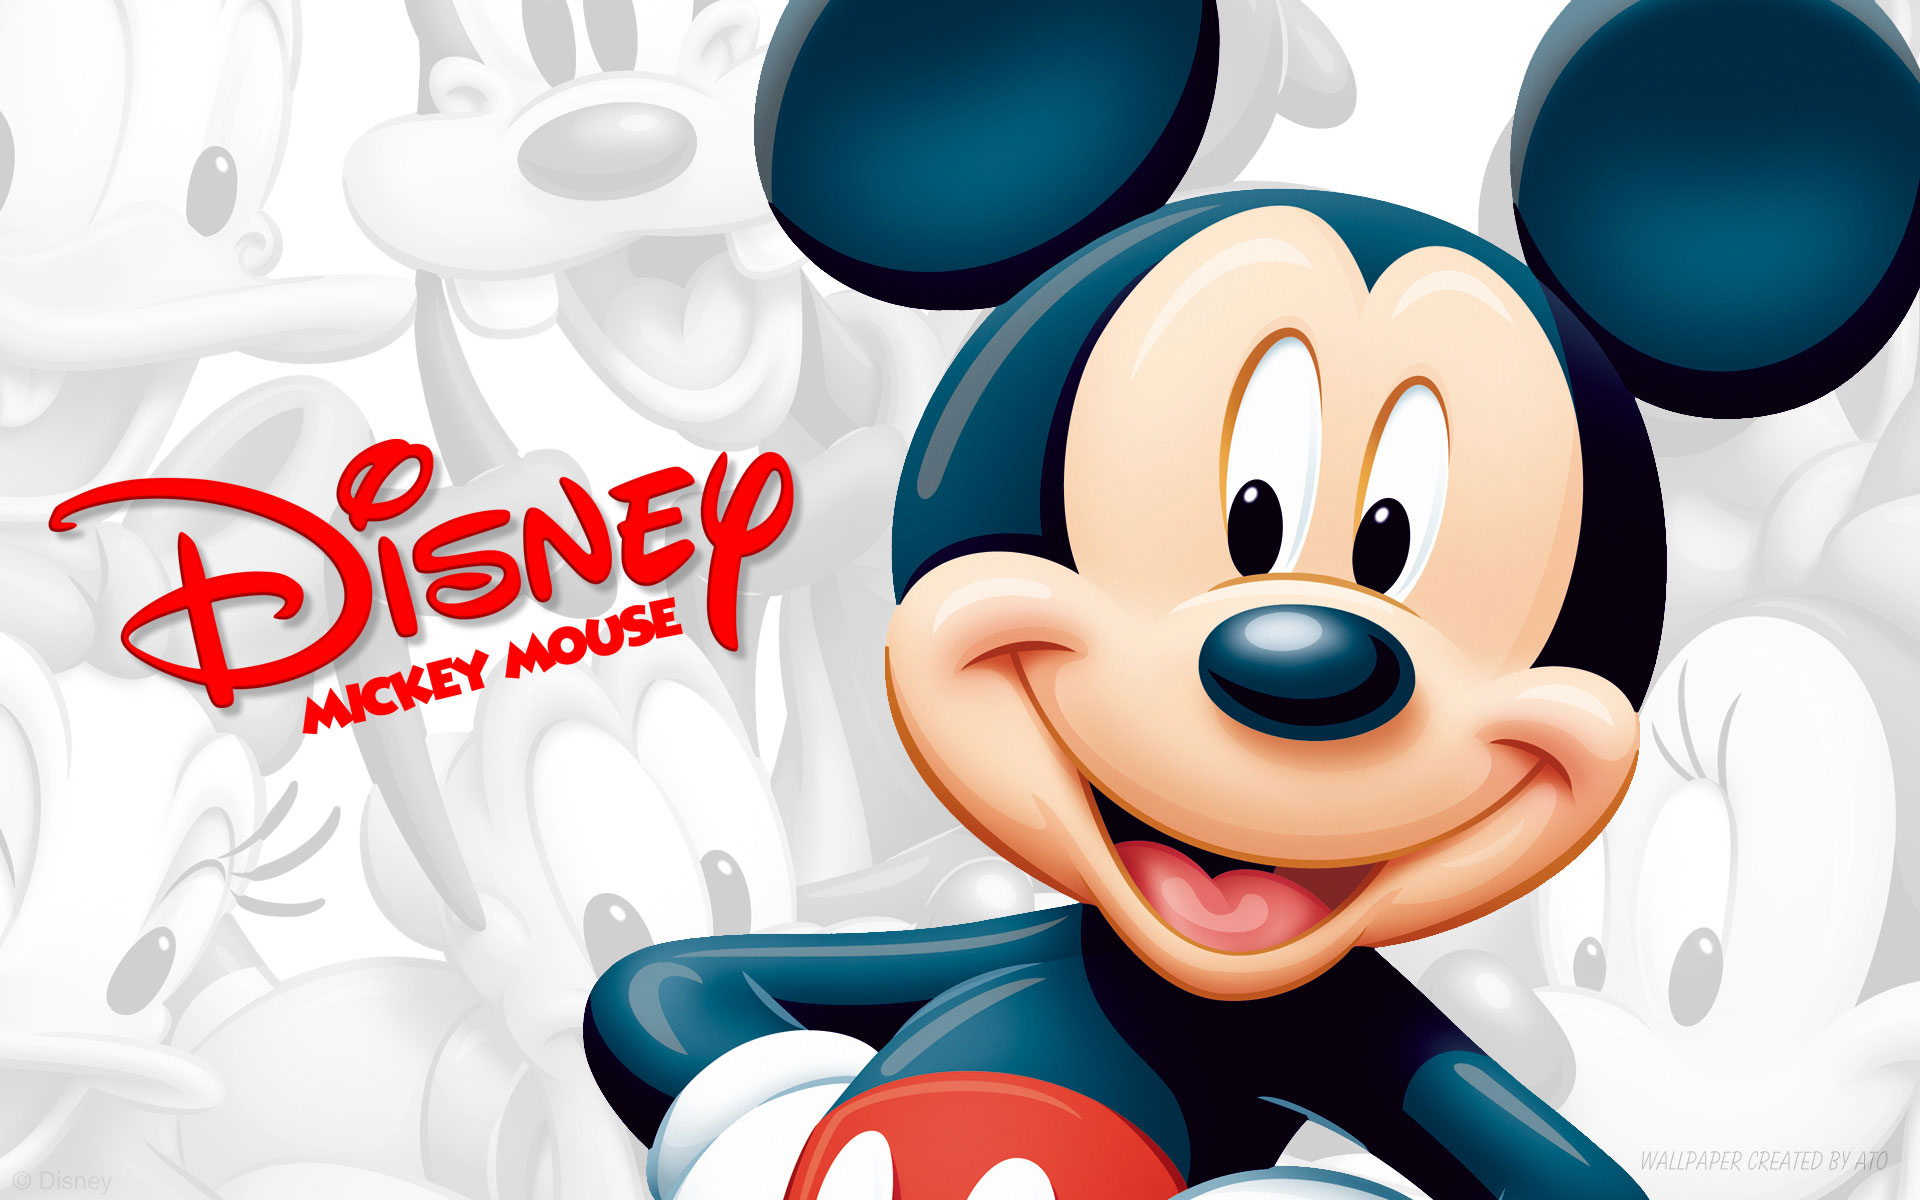 Disney Mickey Mickey Mouse Mickey Mouse Photo 34504105 Fanpop